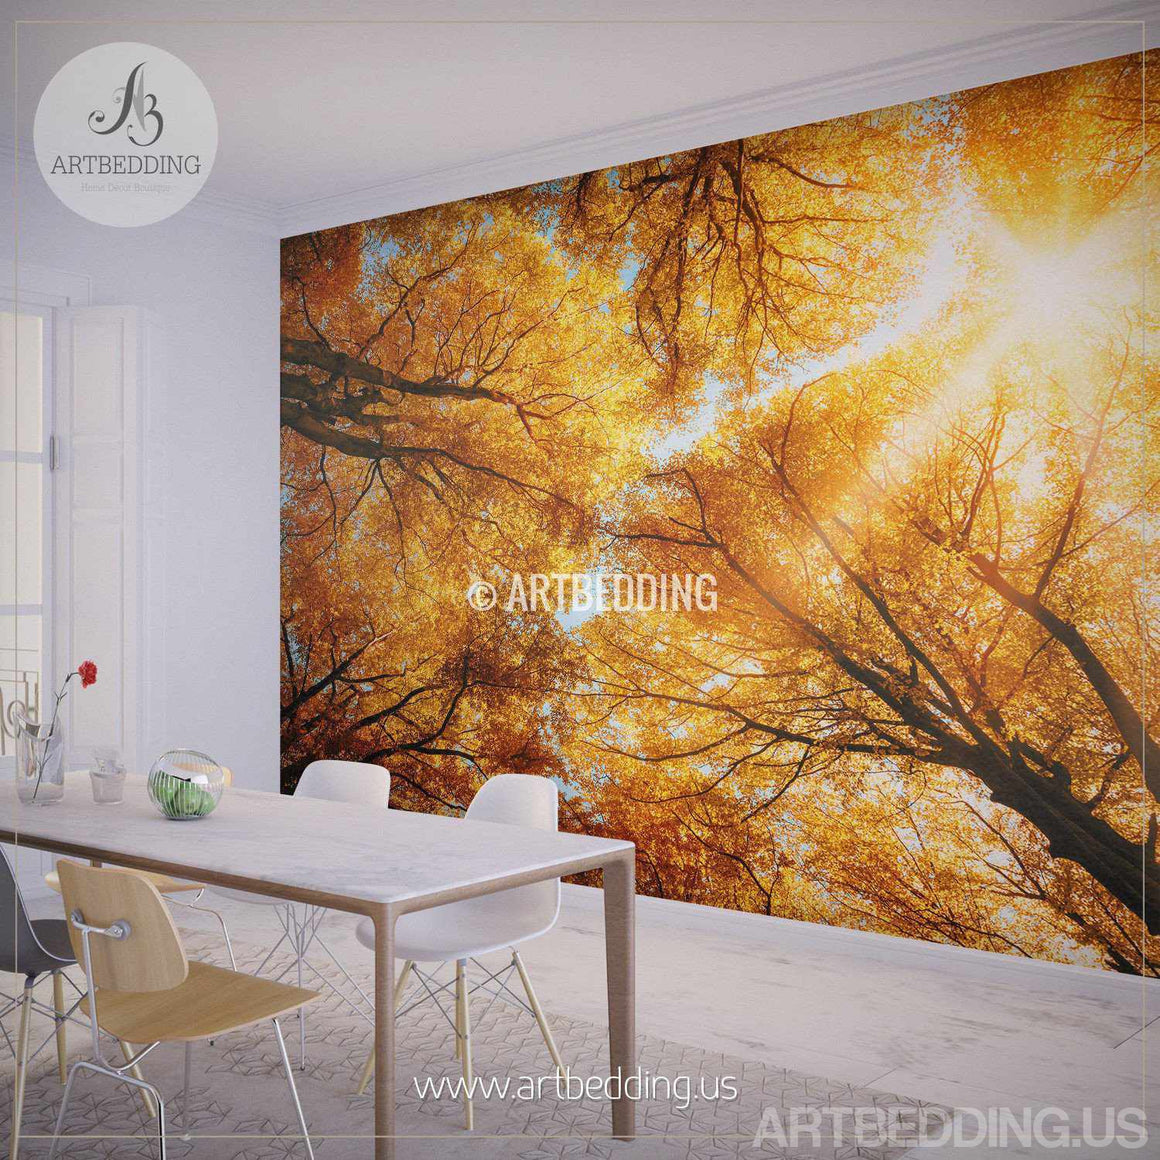 Autumn Treetop Wall Mural, Self Adhesive Peel & Stick Photo Mural, Forest wall mural, Photo mural home decor wall mural